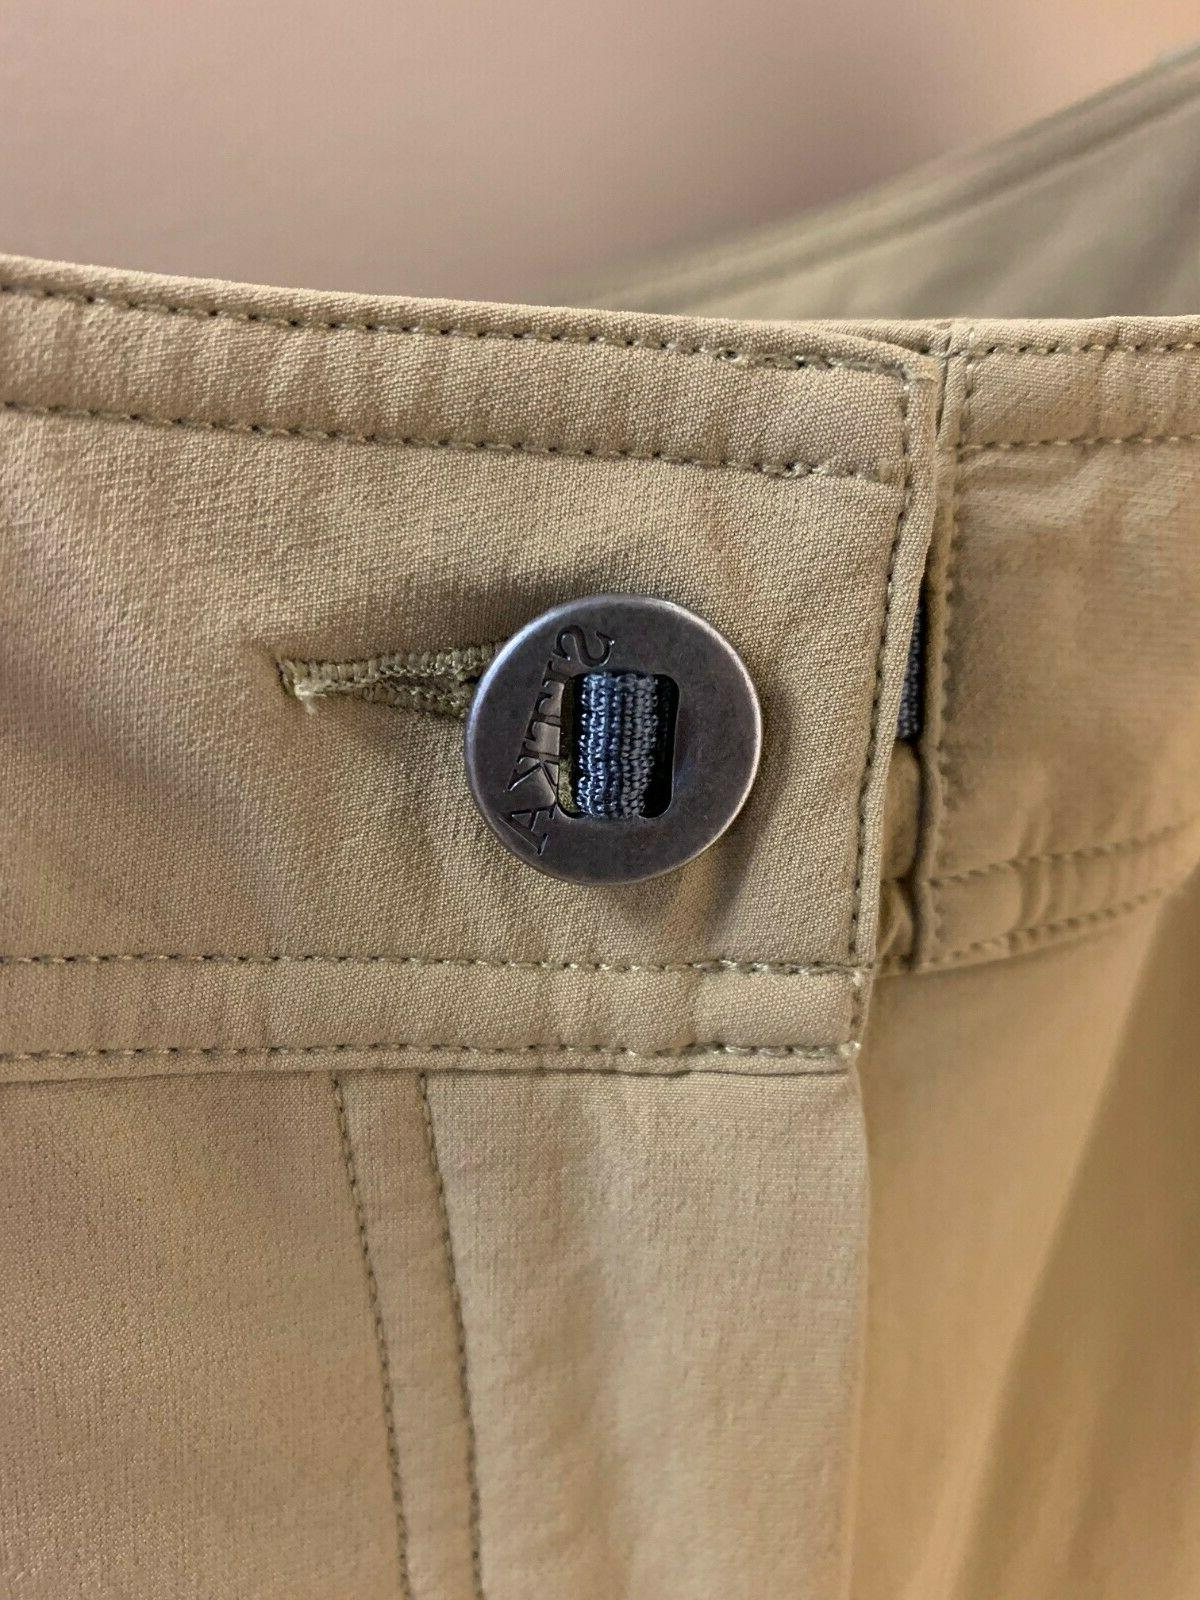 Sitka Pants, Men's size Clay color brand